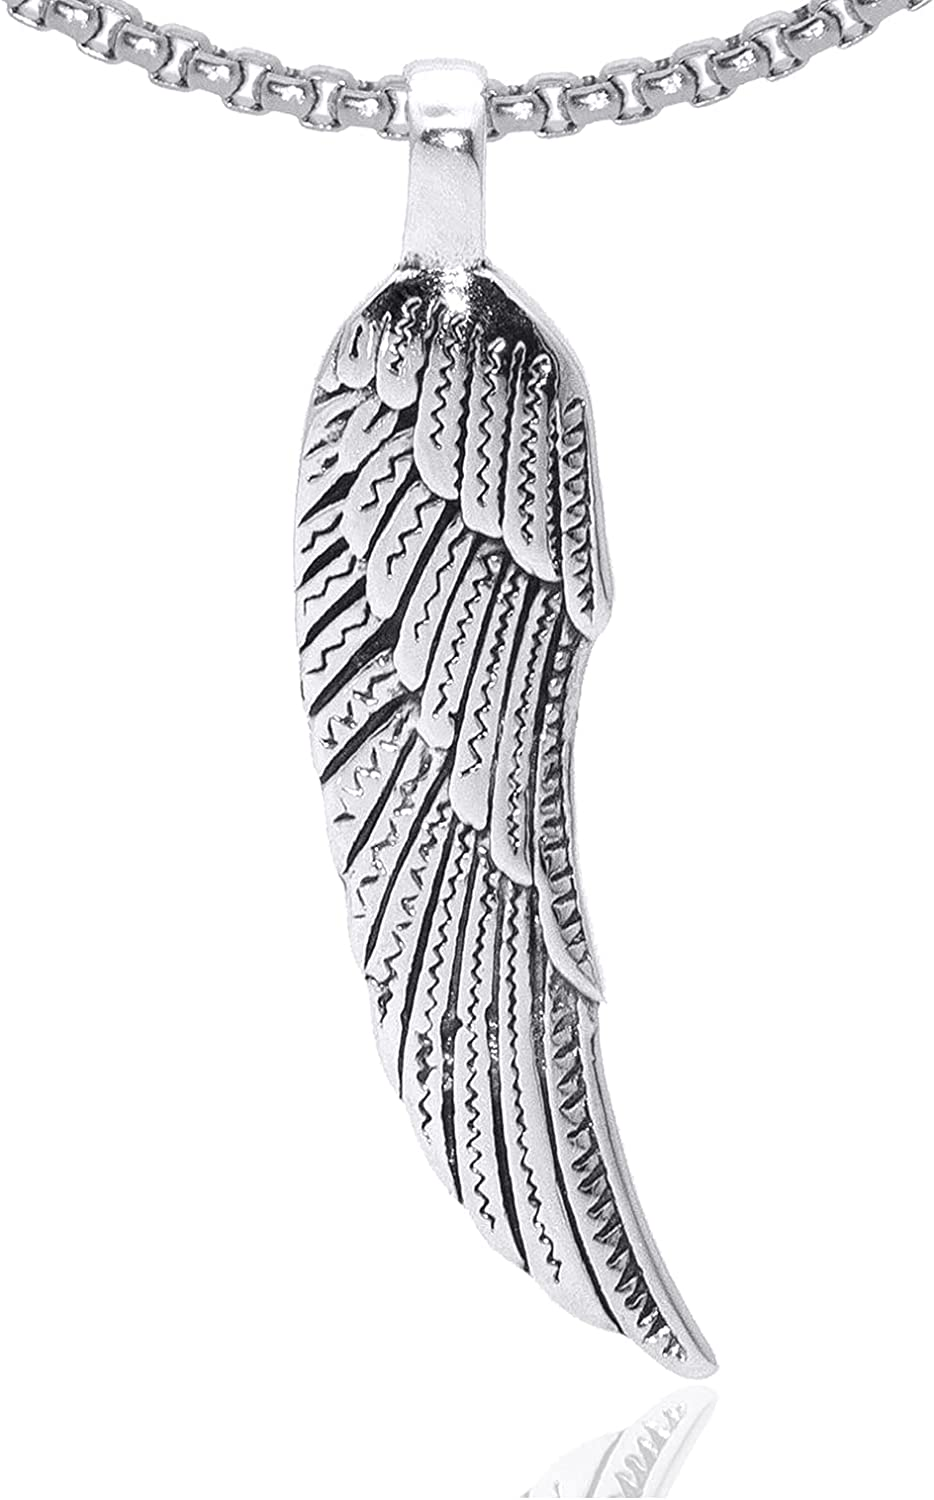 Fusamk Punk Stainless Steel Wing Pendant Feather Necklace,24